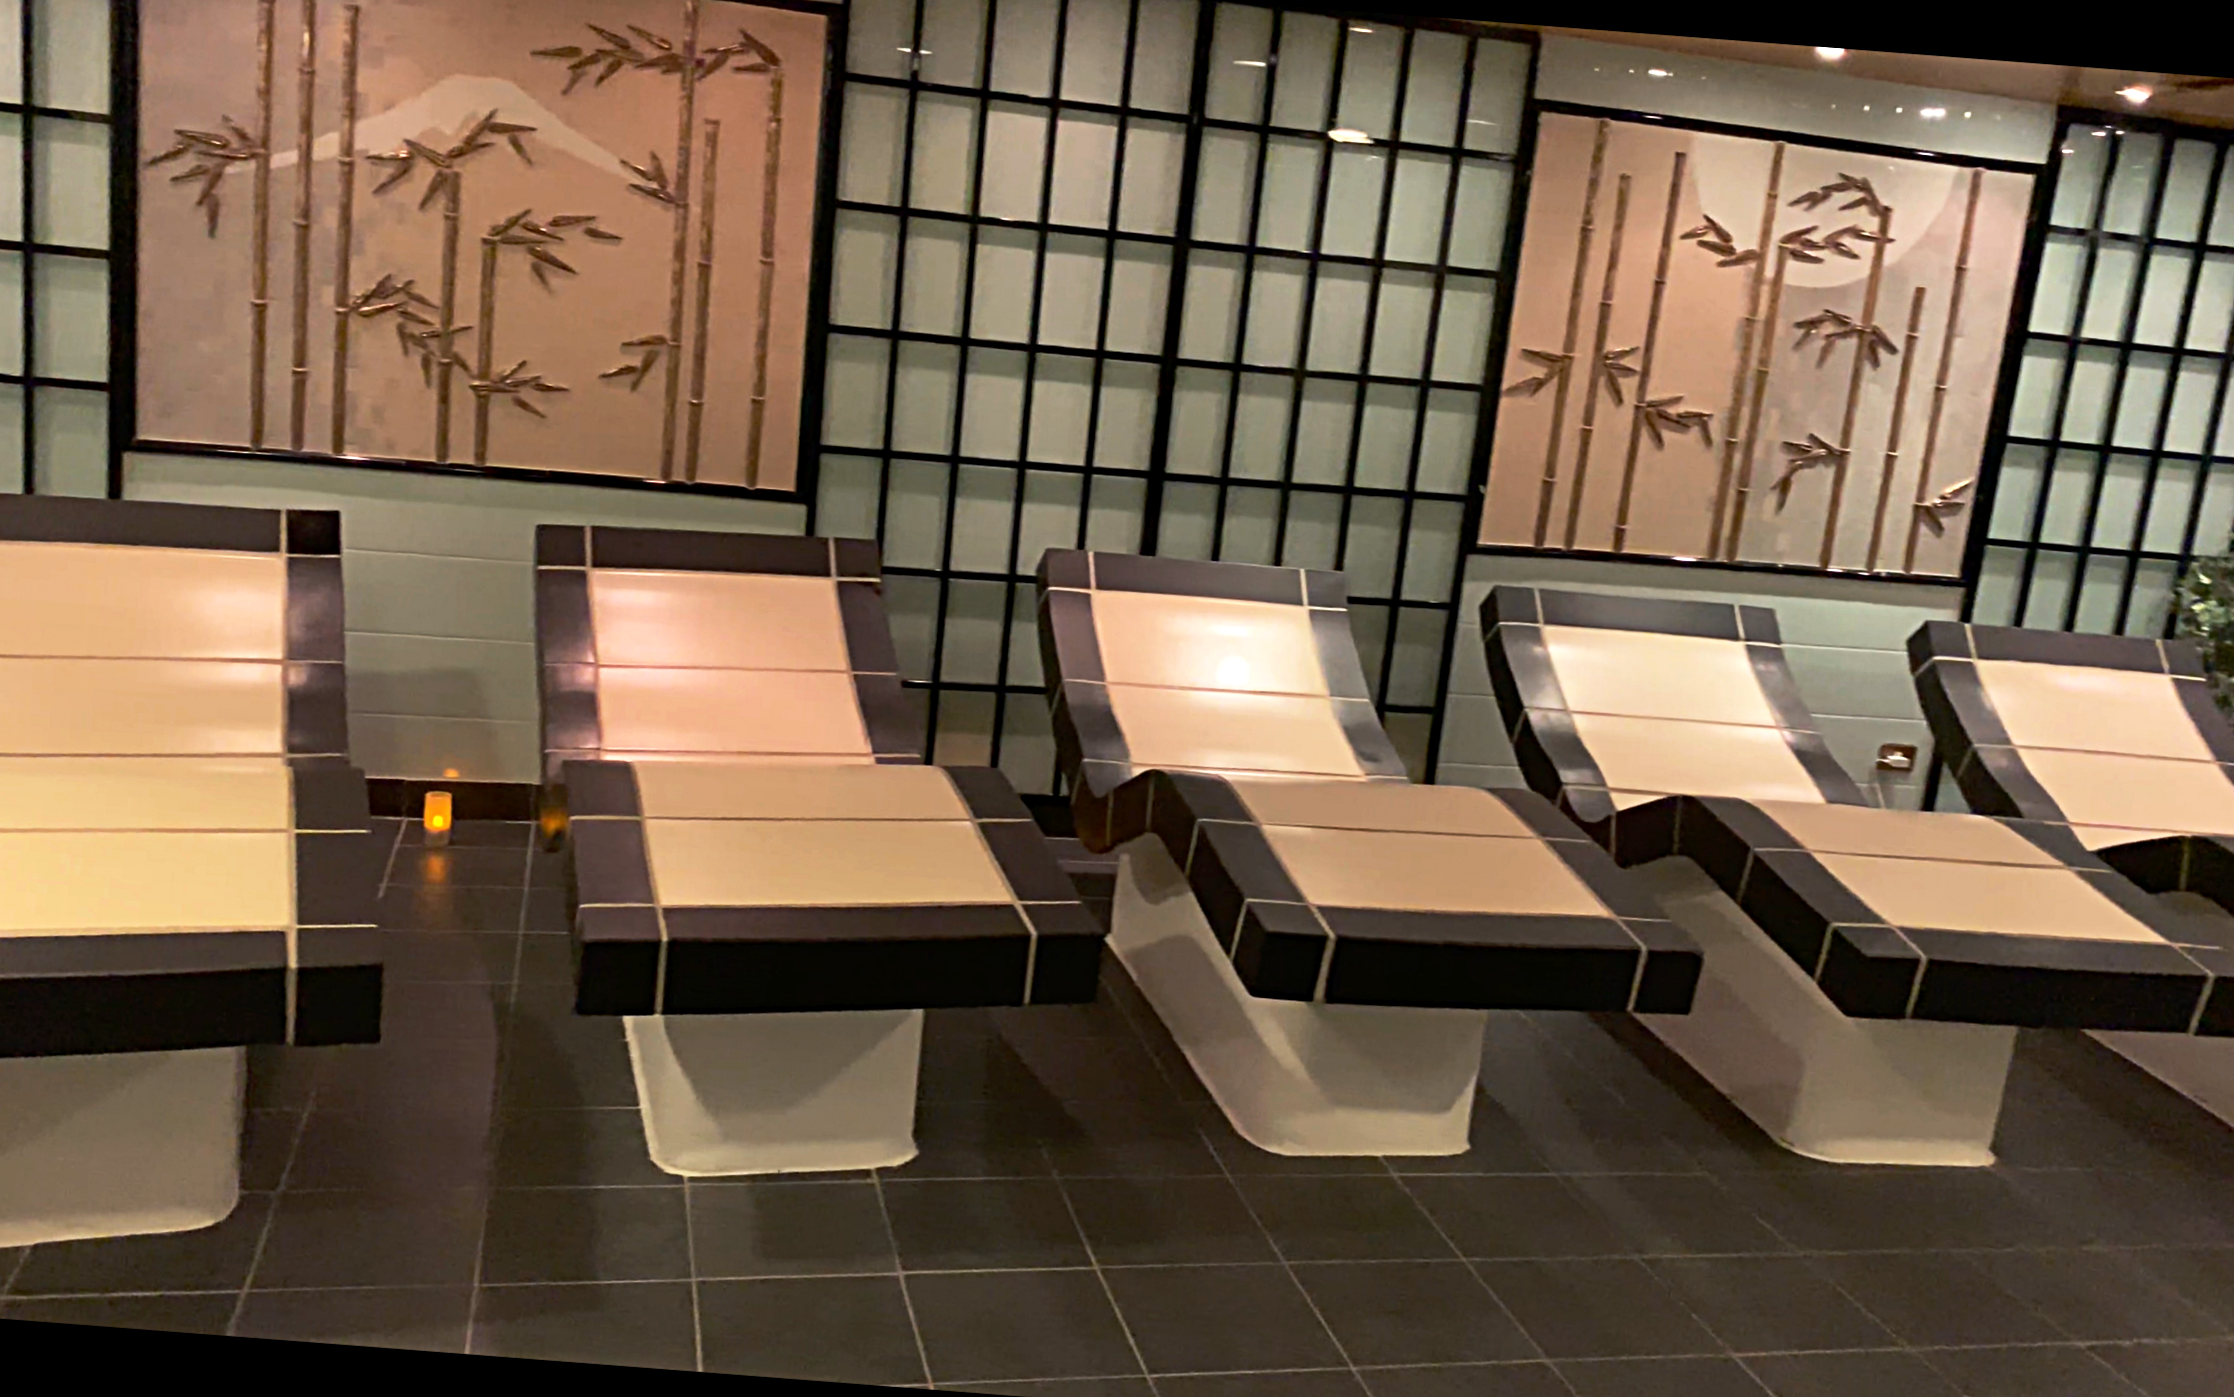 Heated beds in the inside spa area.